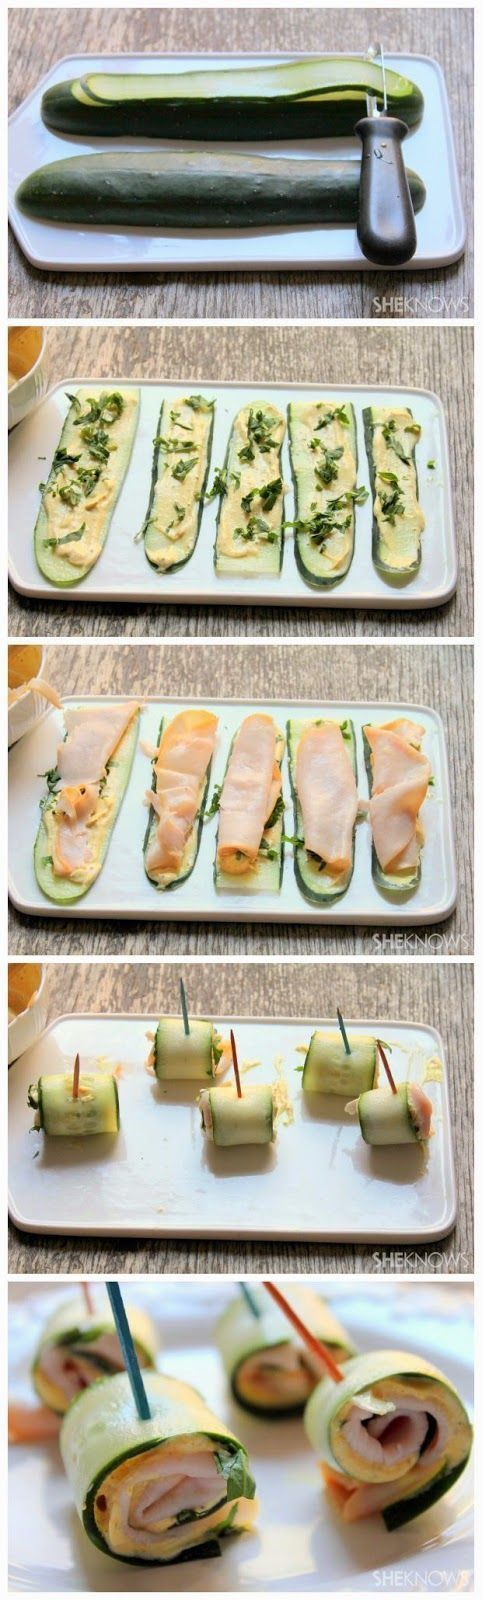 """Good protein snacks Cucumber rollups with hummus and turkey [can use zucchini too] #lowcarb #healthy #protein """"cucumbers (or use zucchini) 1-1/2 cups low-fat Greek yogurt (or use hummus) 1 tablespoon curry powder 1 tablespoon lime juice salt and pepper 1"""